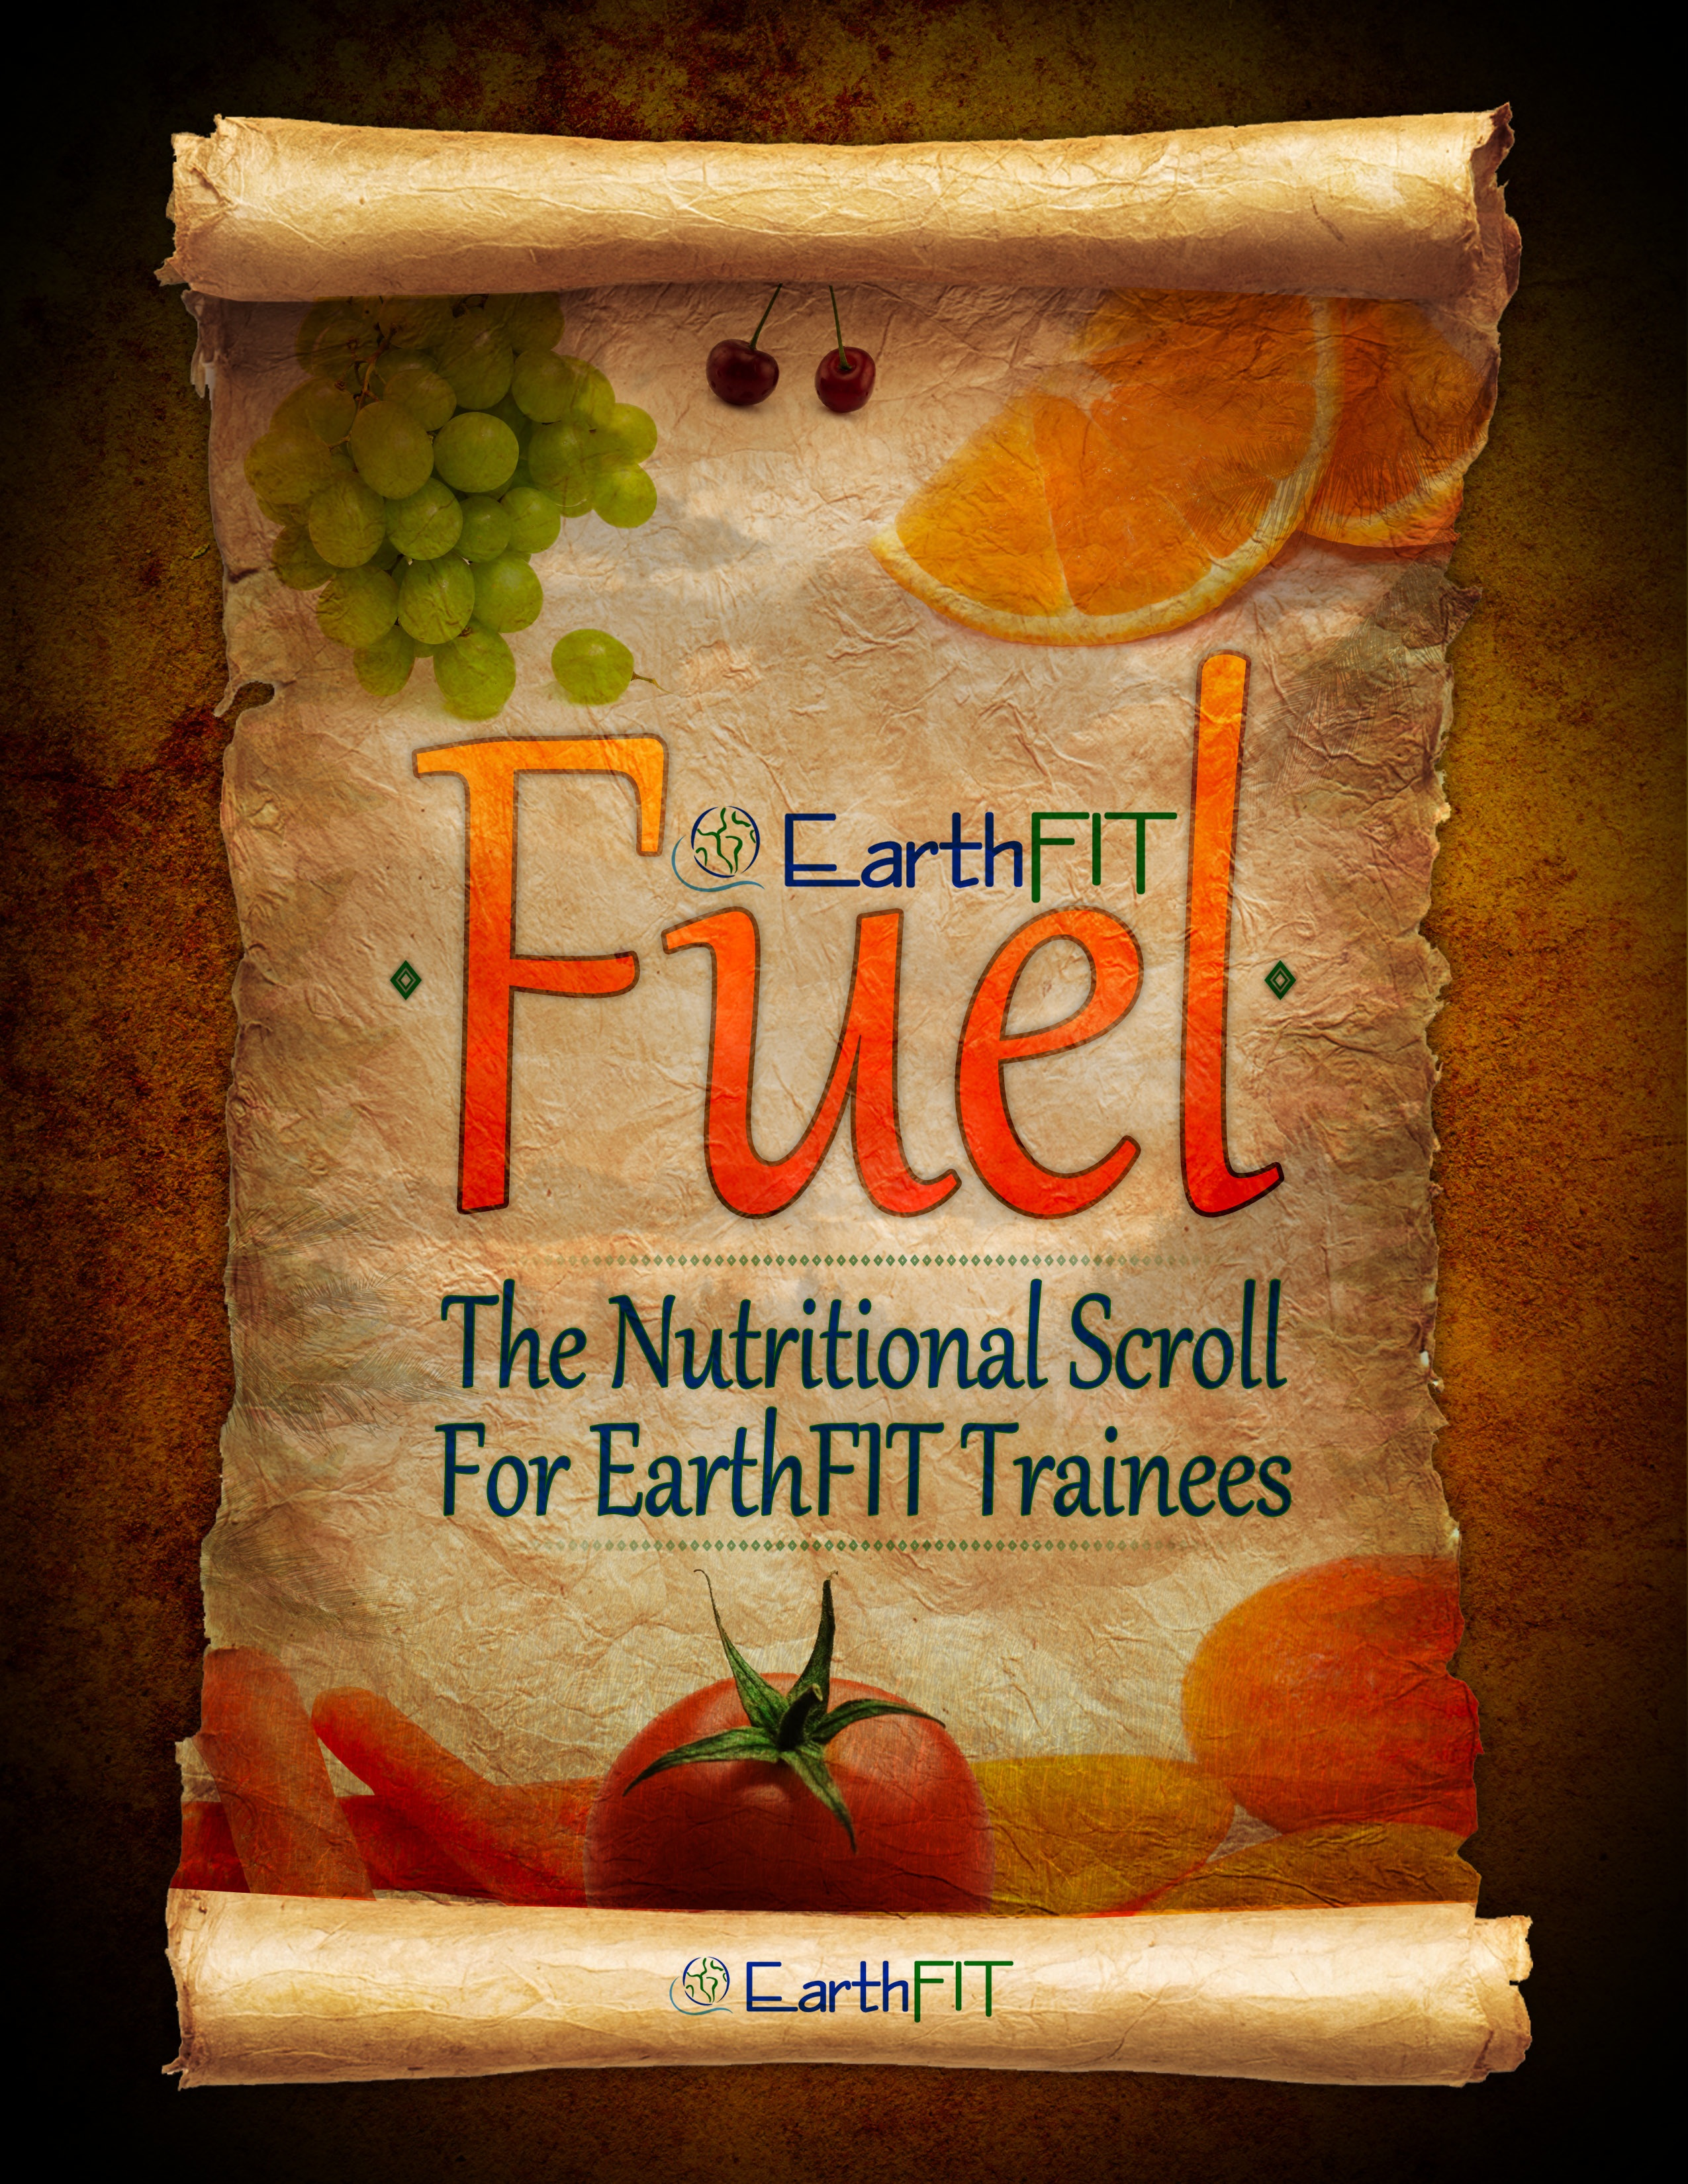 EarthFIT Fuel Beaufort SC